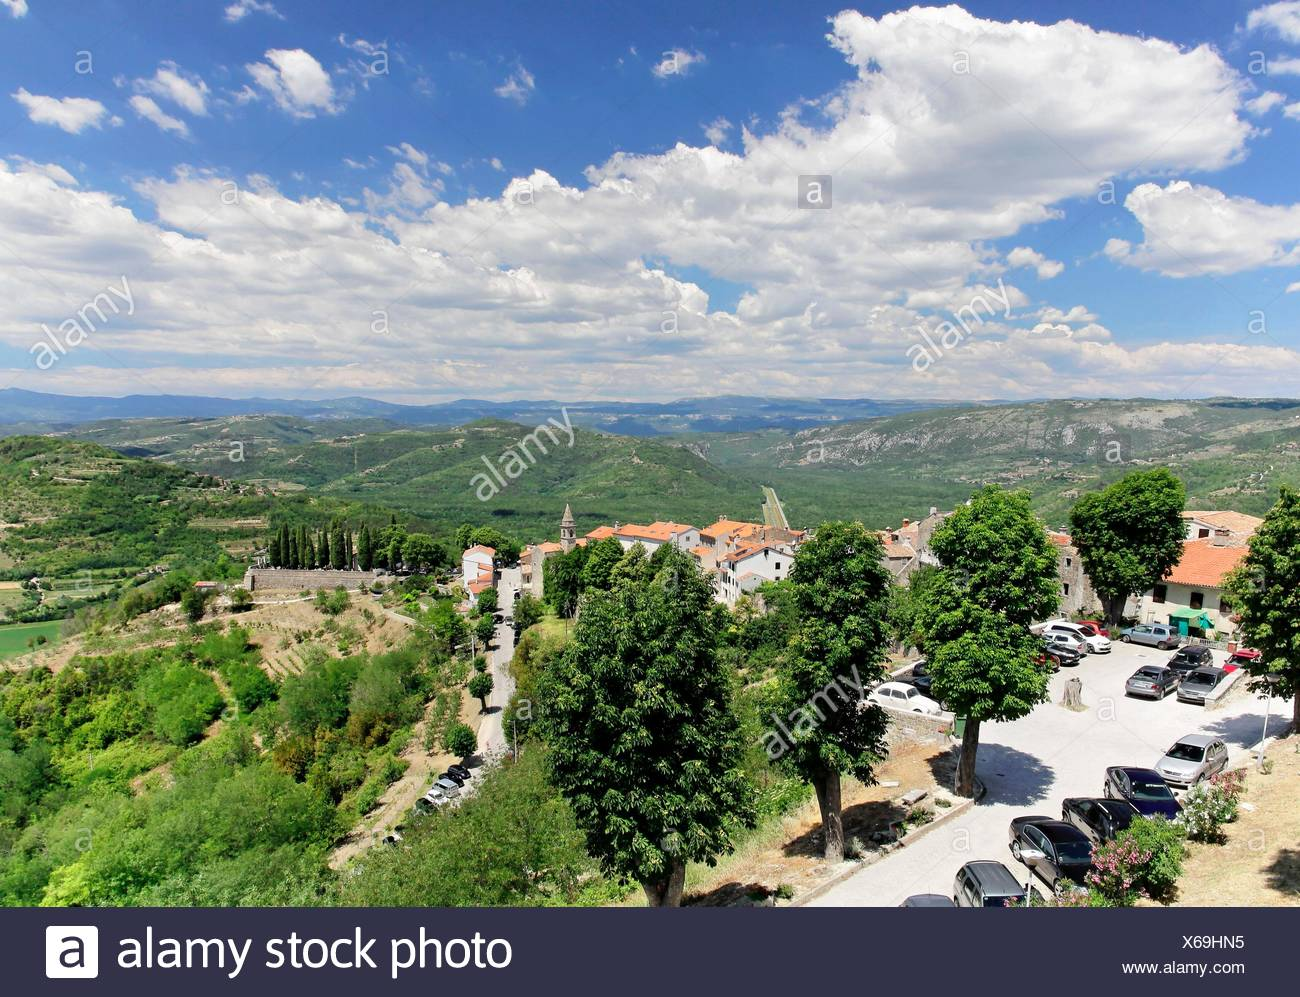 geography / travel, Croatia, Istria, Motovun, Additional-Rights-Clearance-Info-Not-Available - Stock Image